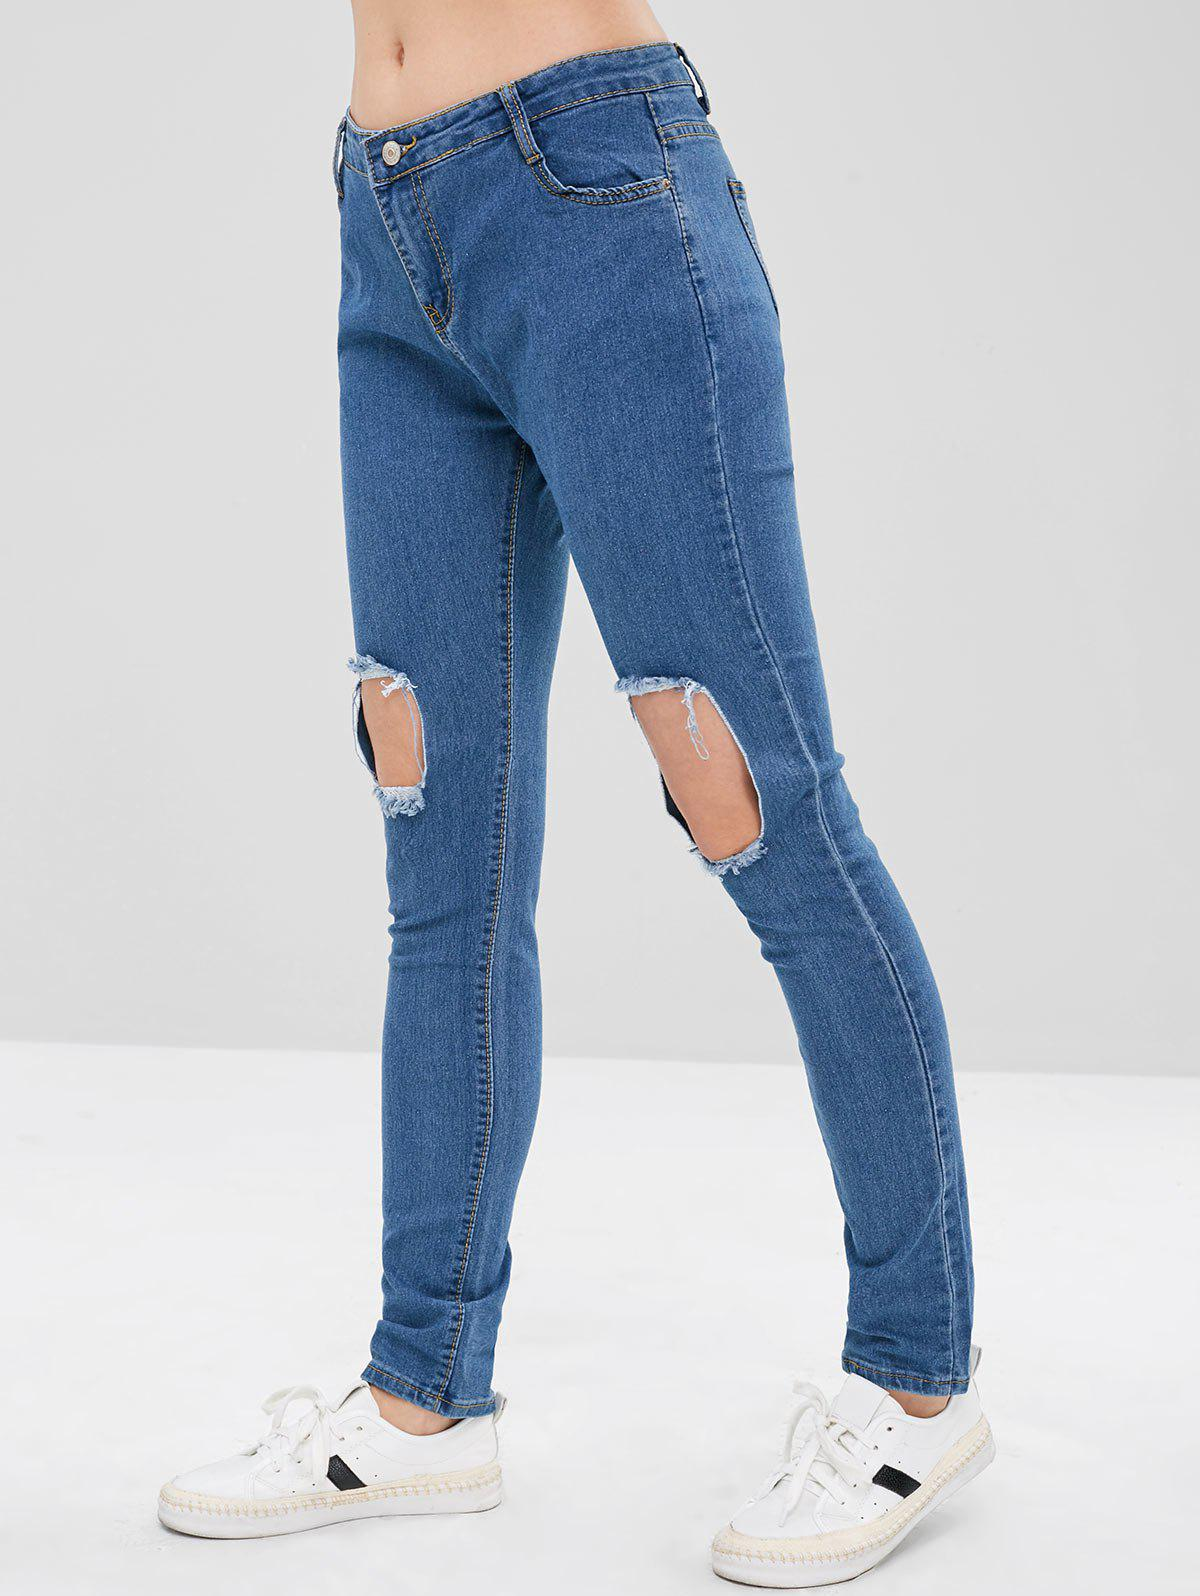 Cut Out Distressed Skinny Jeans 316360205